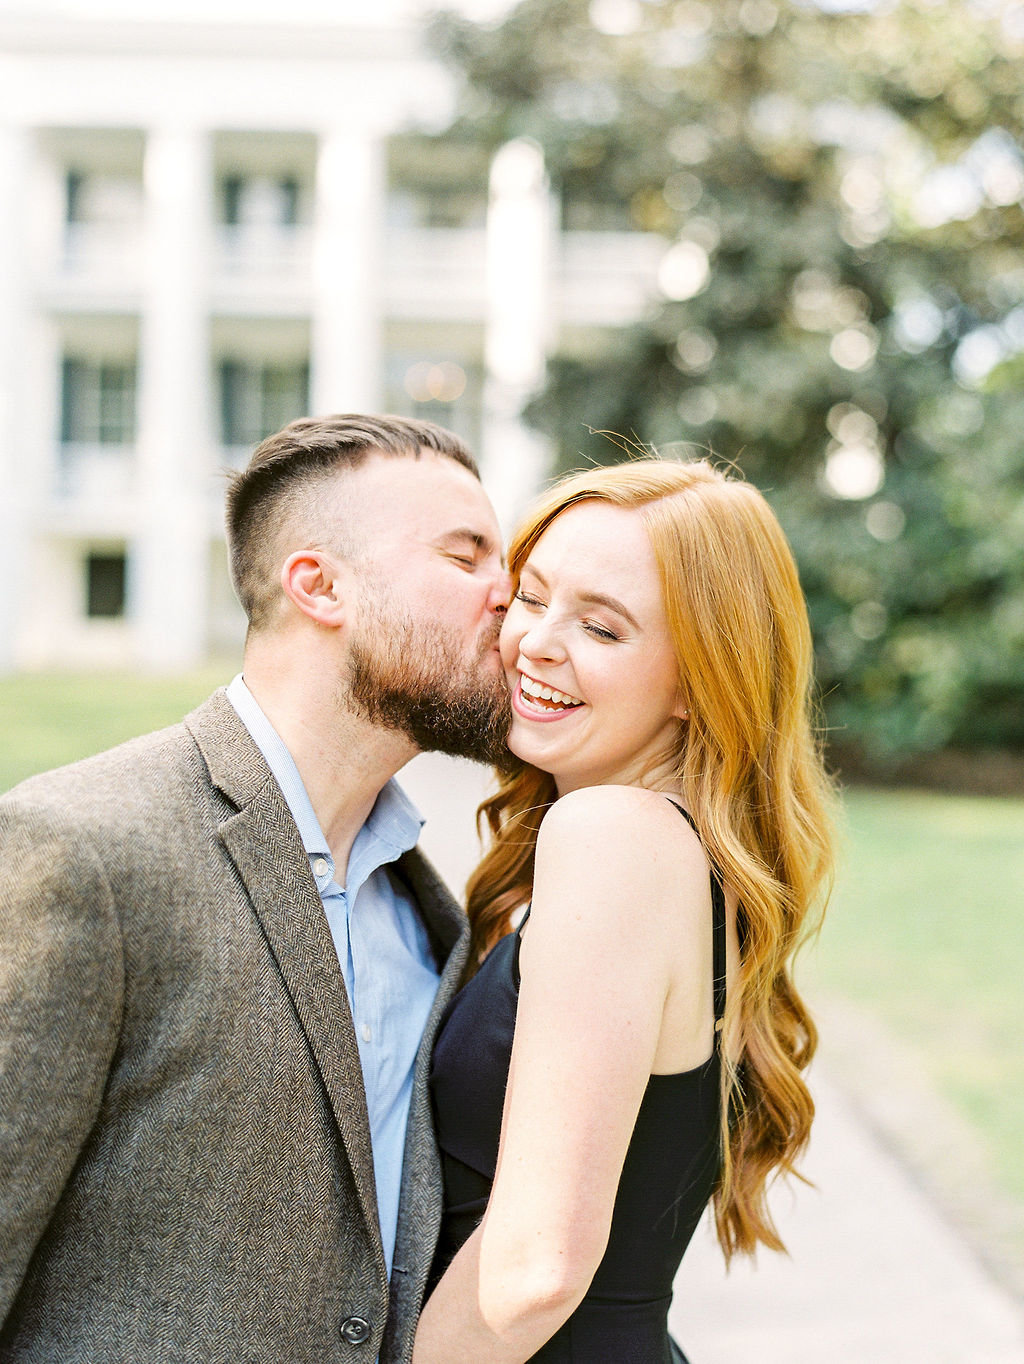 CourtneyPrice-Emma&RyanFilm-3